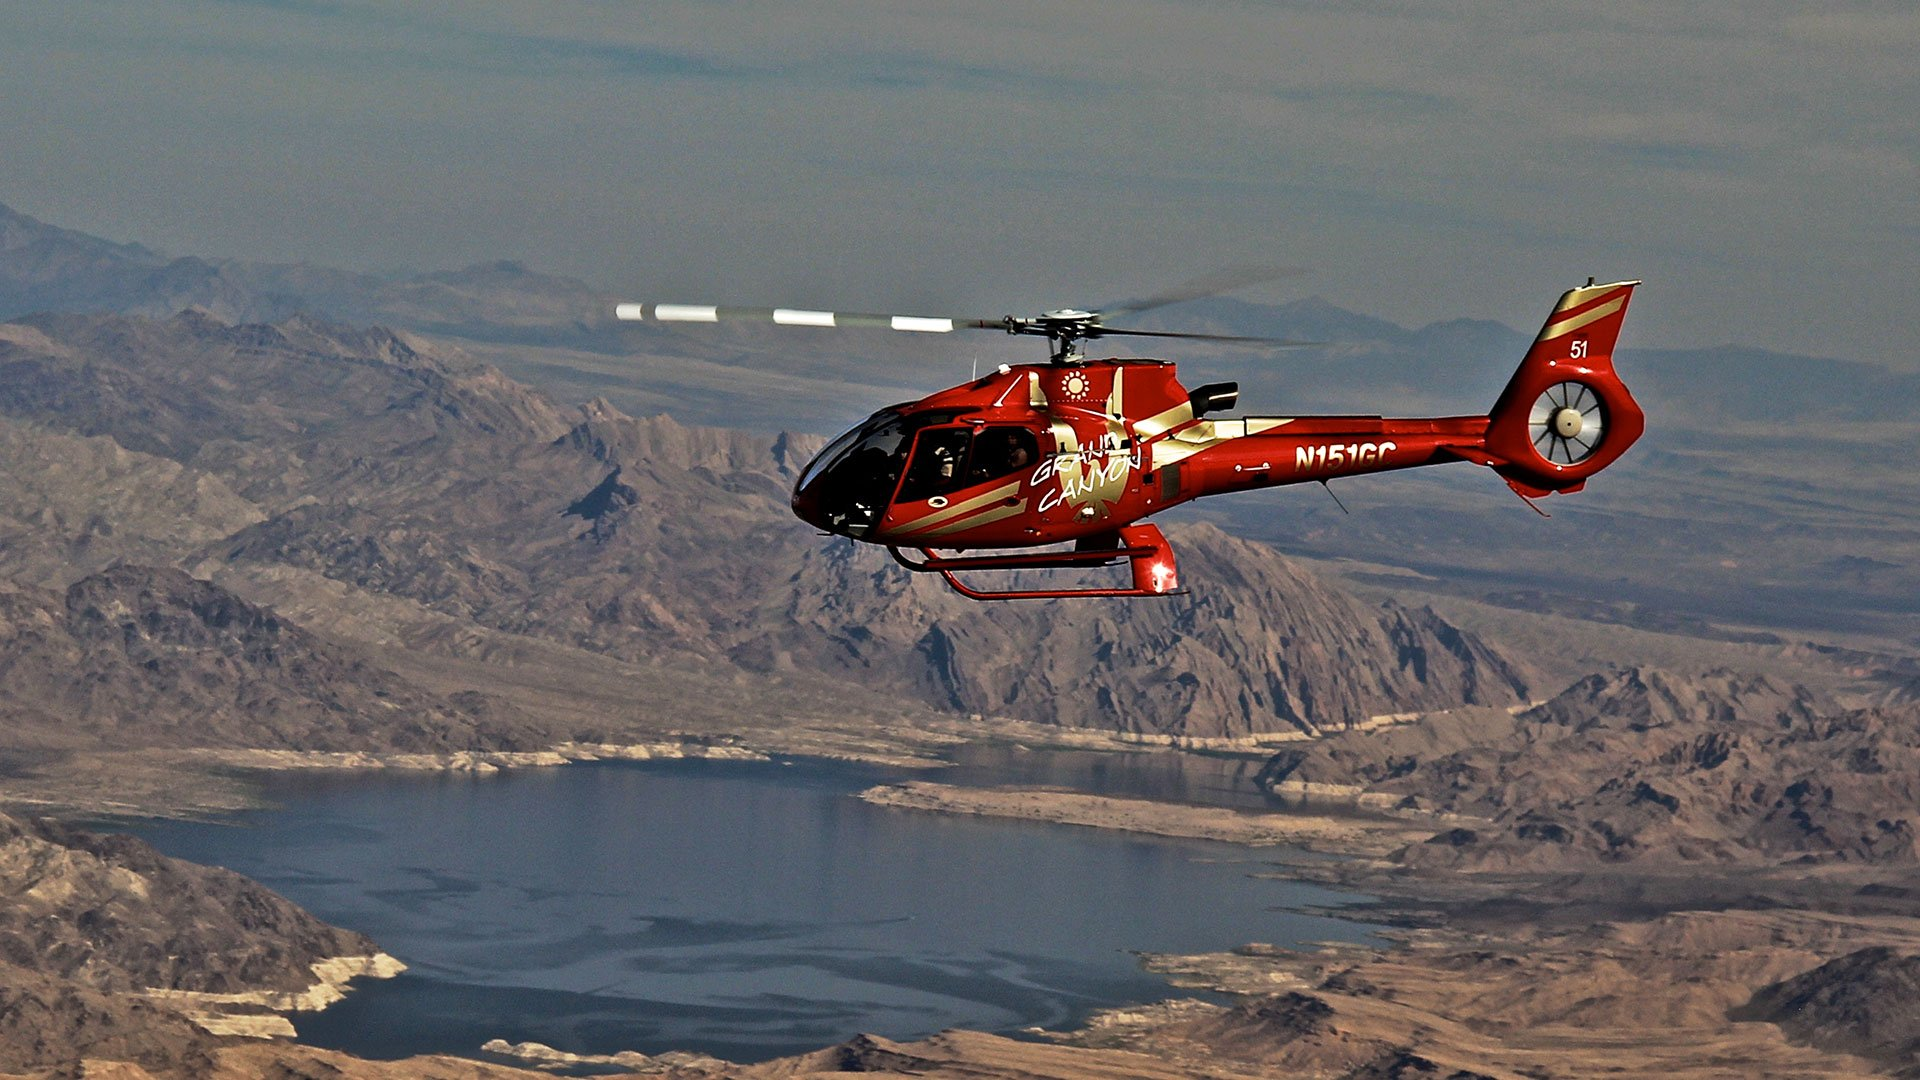 Helicóptero EC-130 sobrevoando o Lake Mead a caminho da Margem Oeste do Grand Canyon